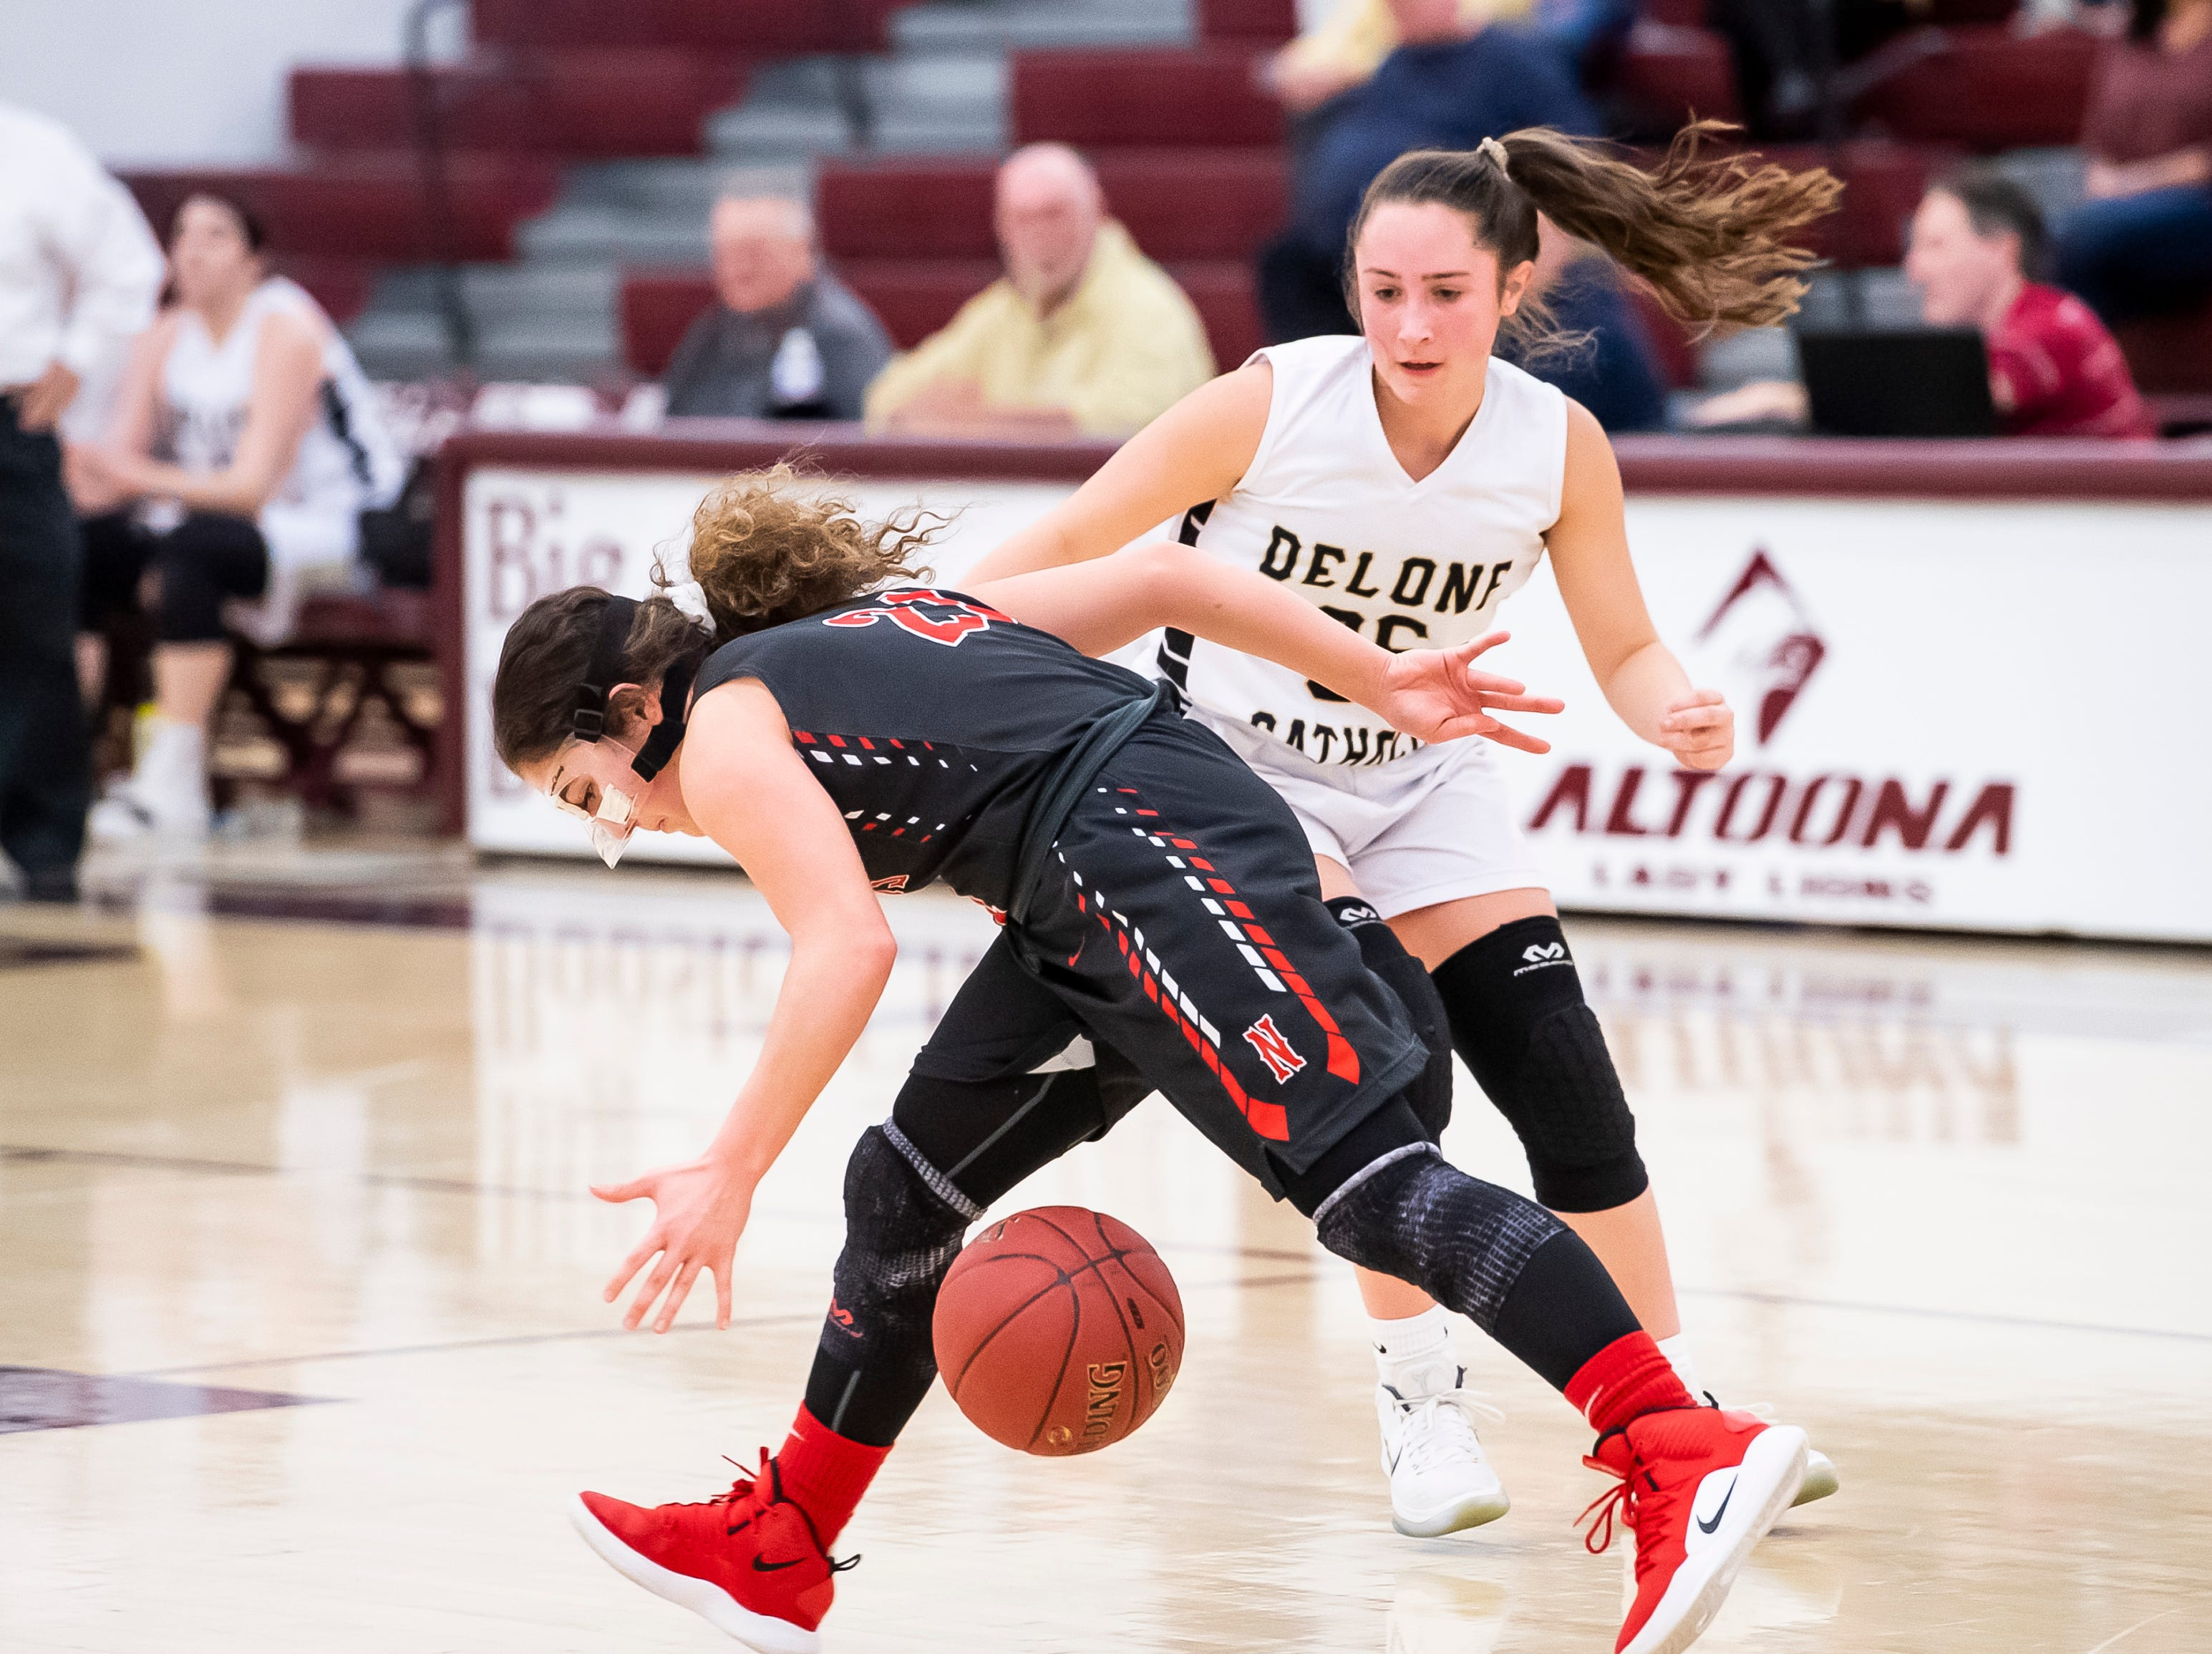 Neshannock's Ellina DeLillo temporarily loses control of the ball during a PIAA 3A quarterfinal game against Delone Catholic in Altoona, Pa., on Friday, March 15, 2019. The Squirettes won 50-41.